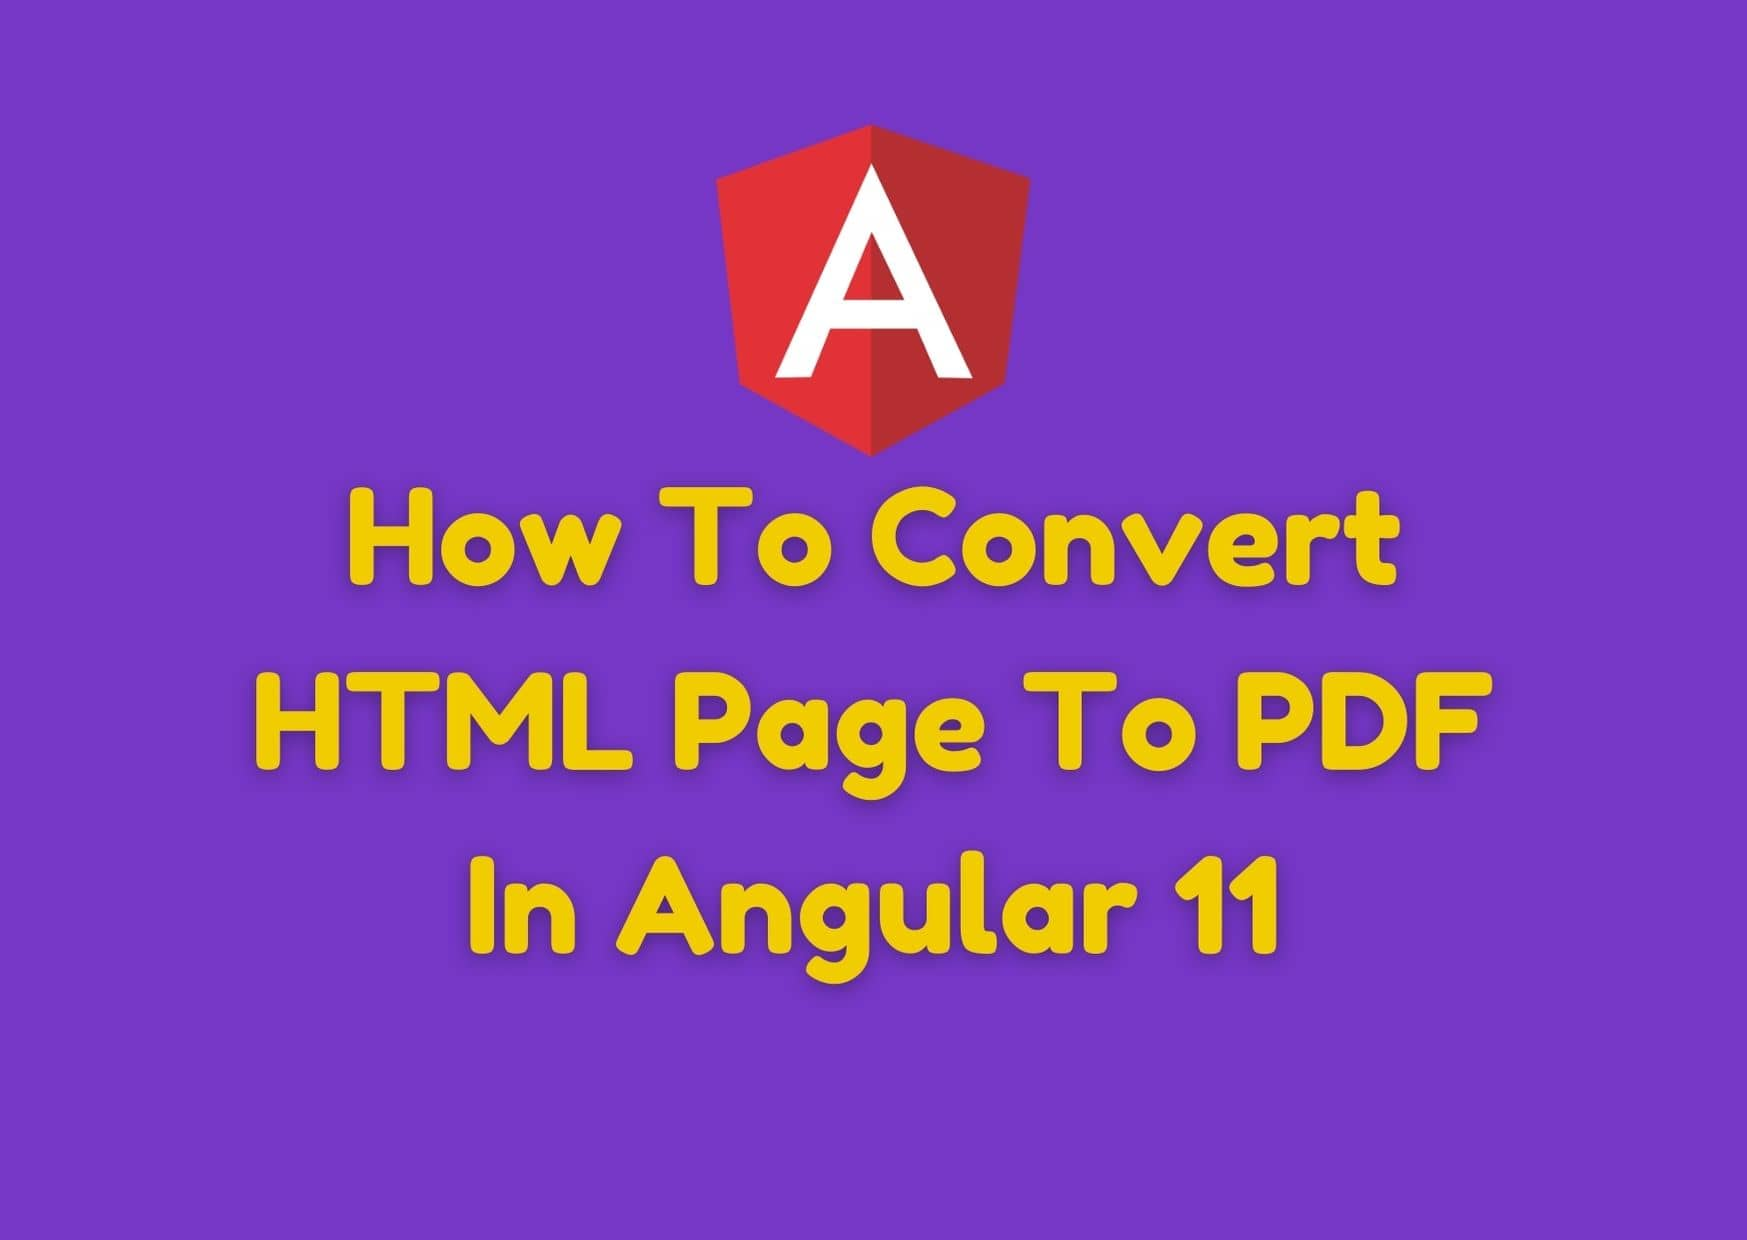 How To Convert HTML Page To PDF In Angular 11?